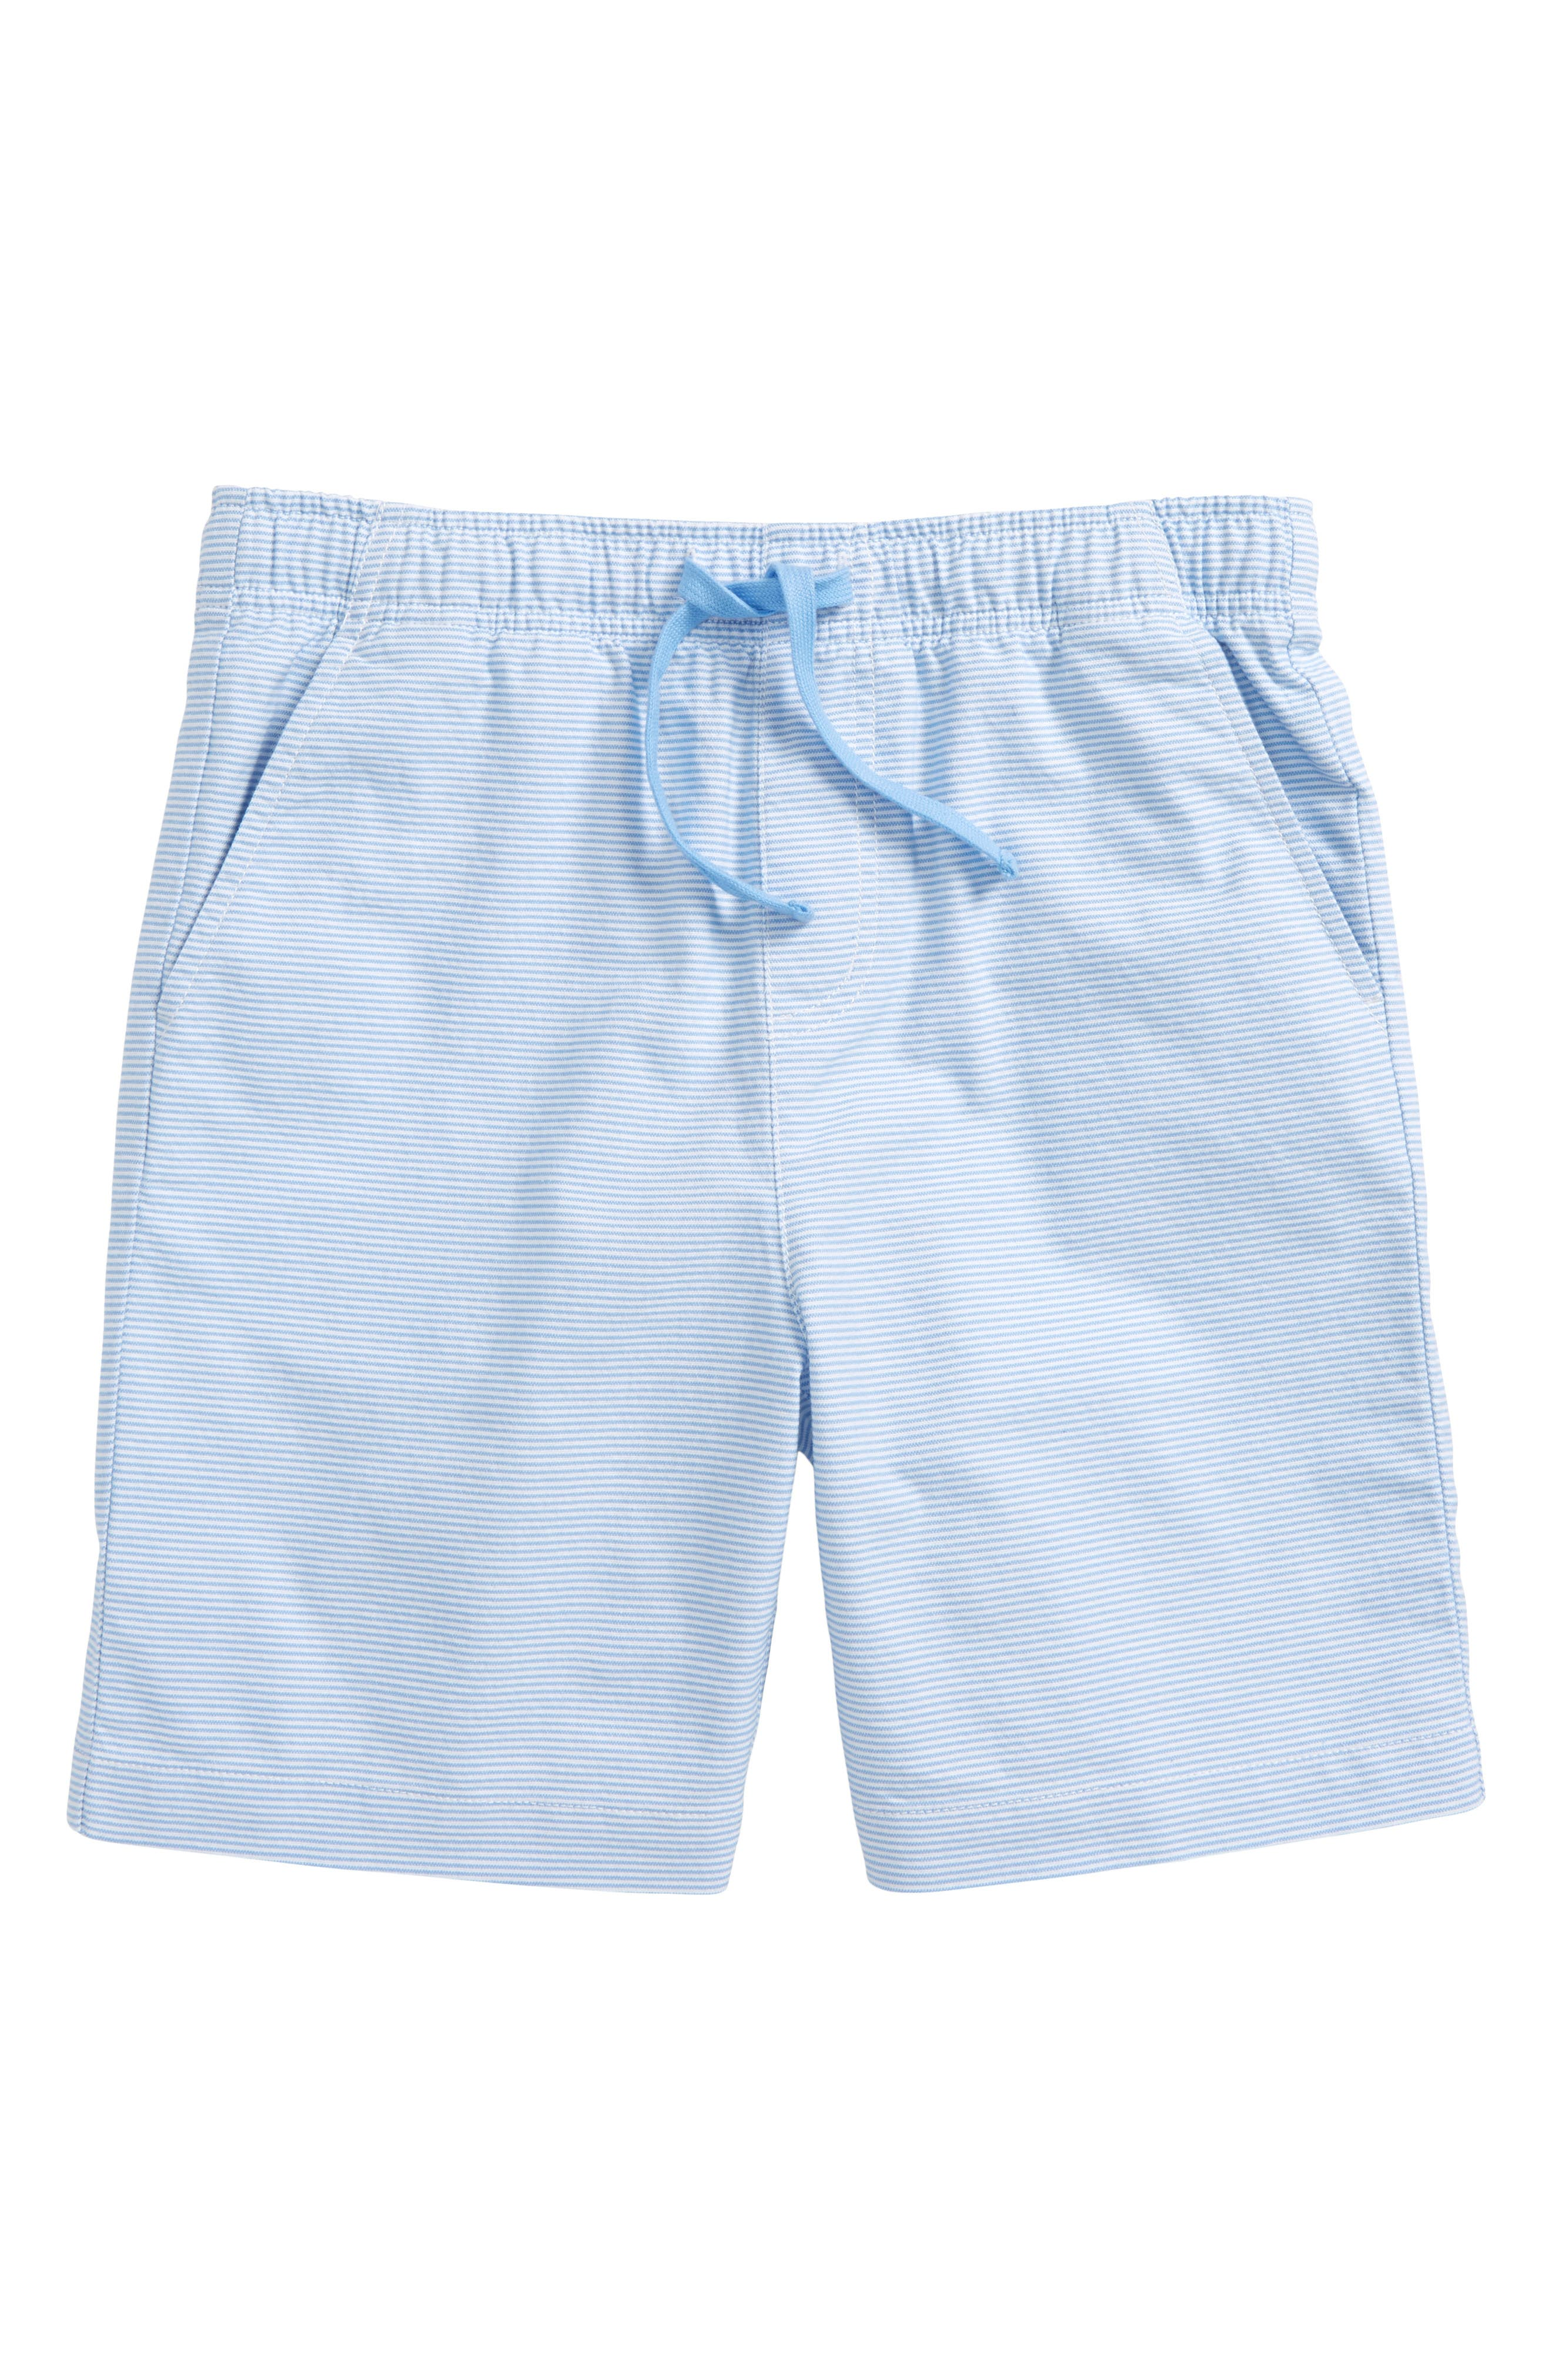 Oxford Stripe Jetty Shorts,                         Main,                         color, Ocean Breeze